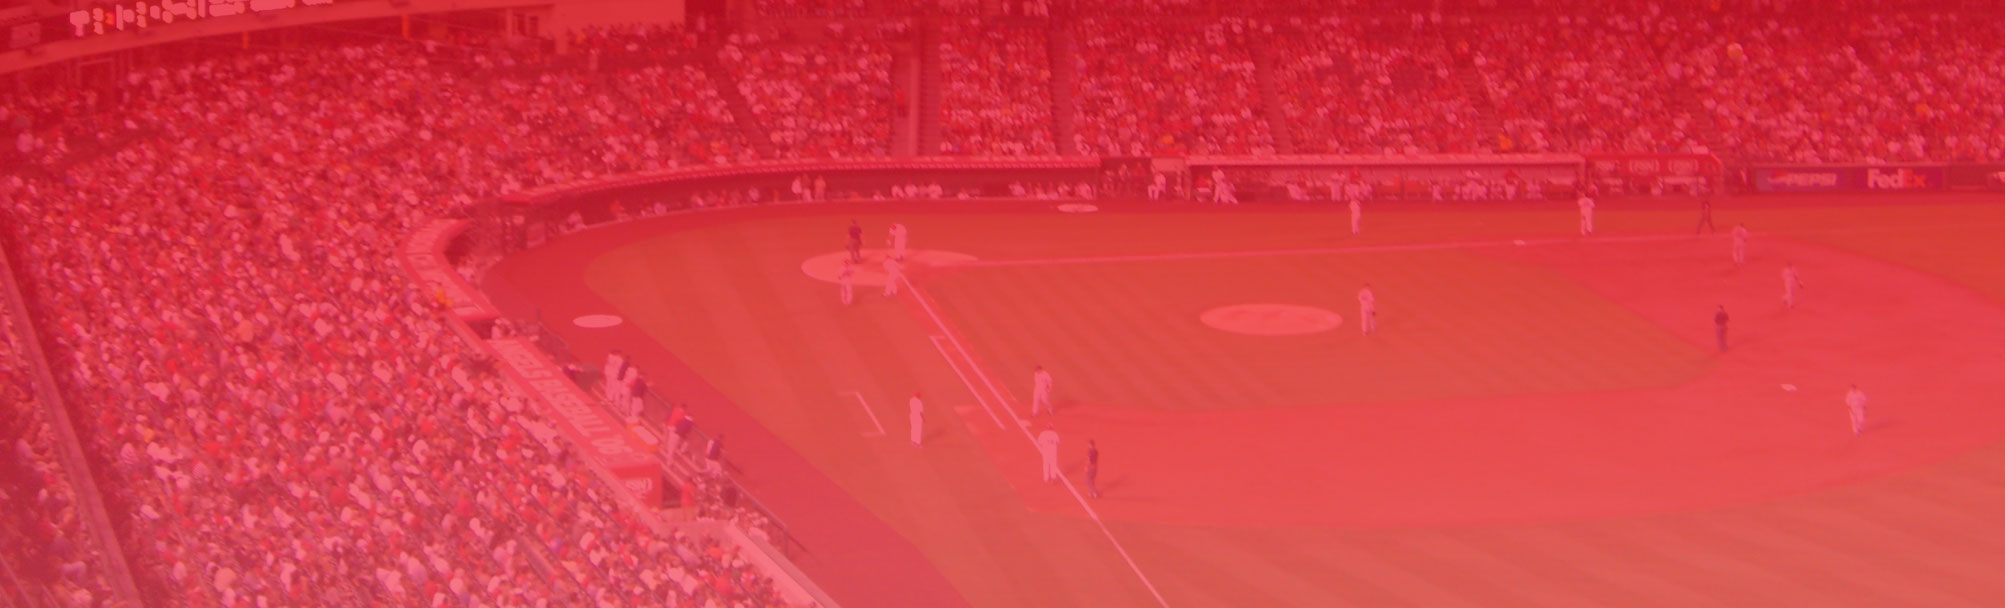 Are you an Angels fan?